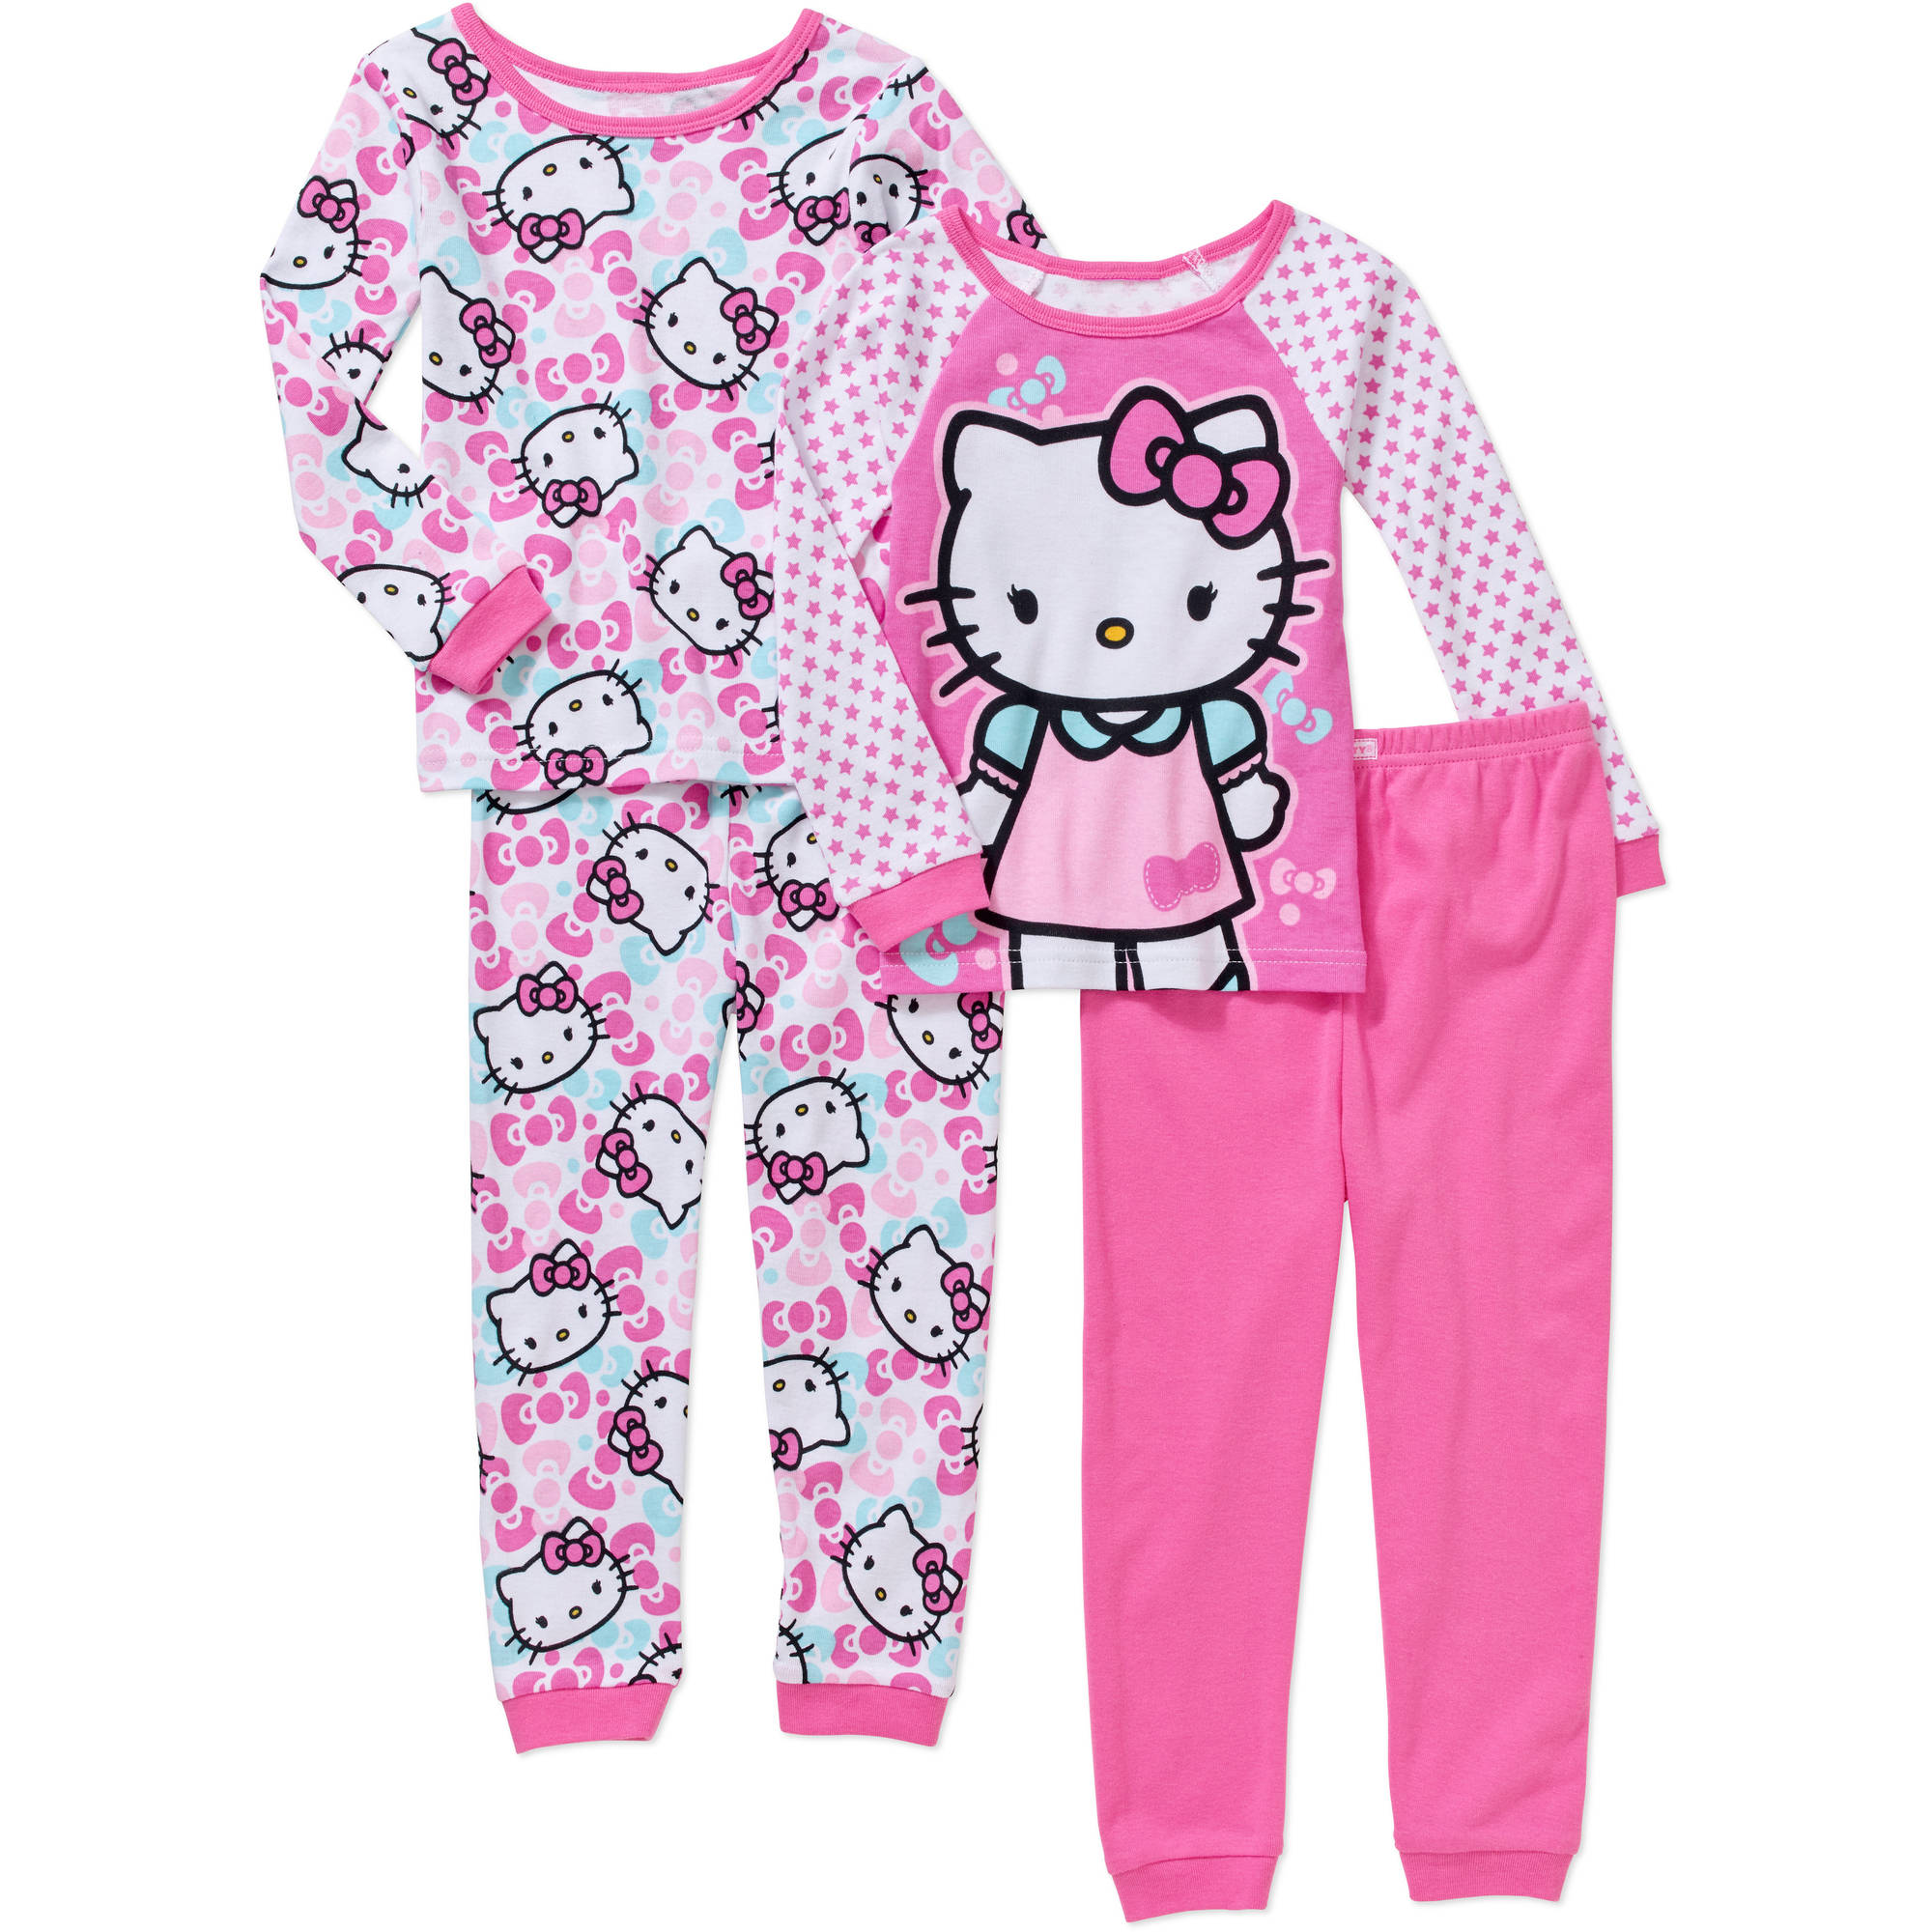 Hello Kitty Baby Toddler Girl Cotton Tight-Fit Pajamas, 4-Piece Mix and Match Set